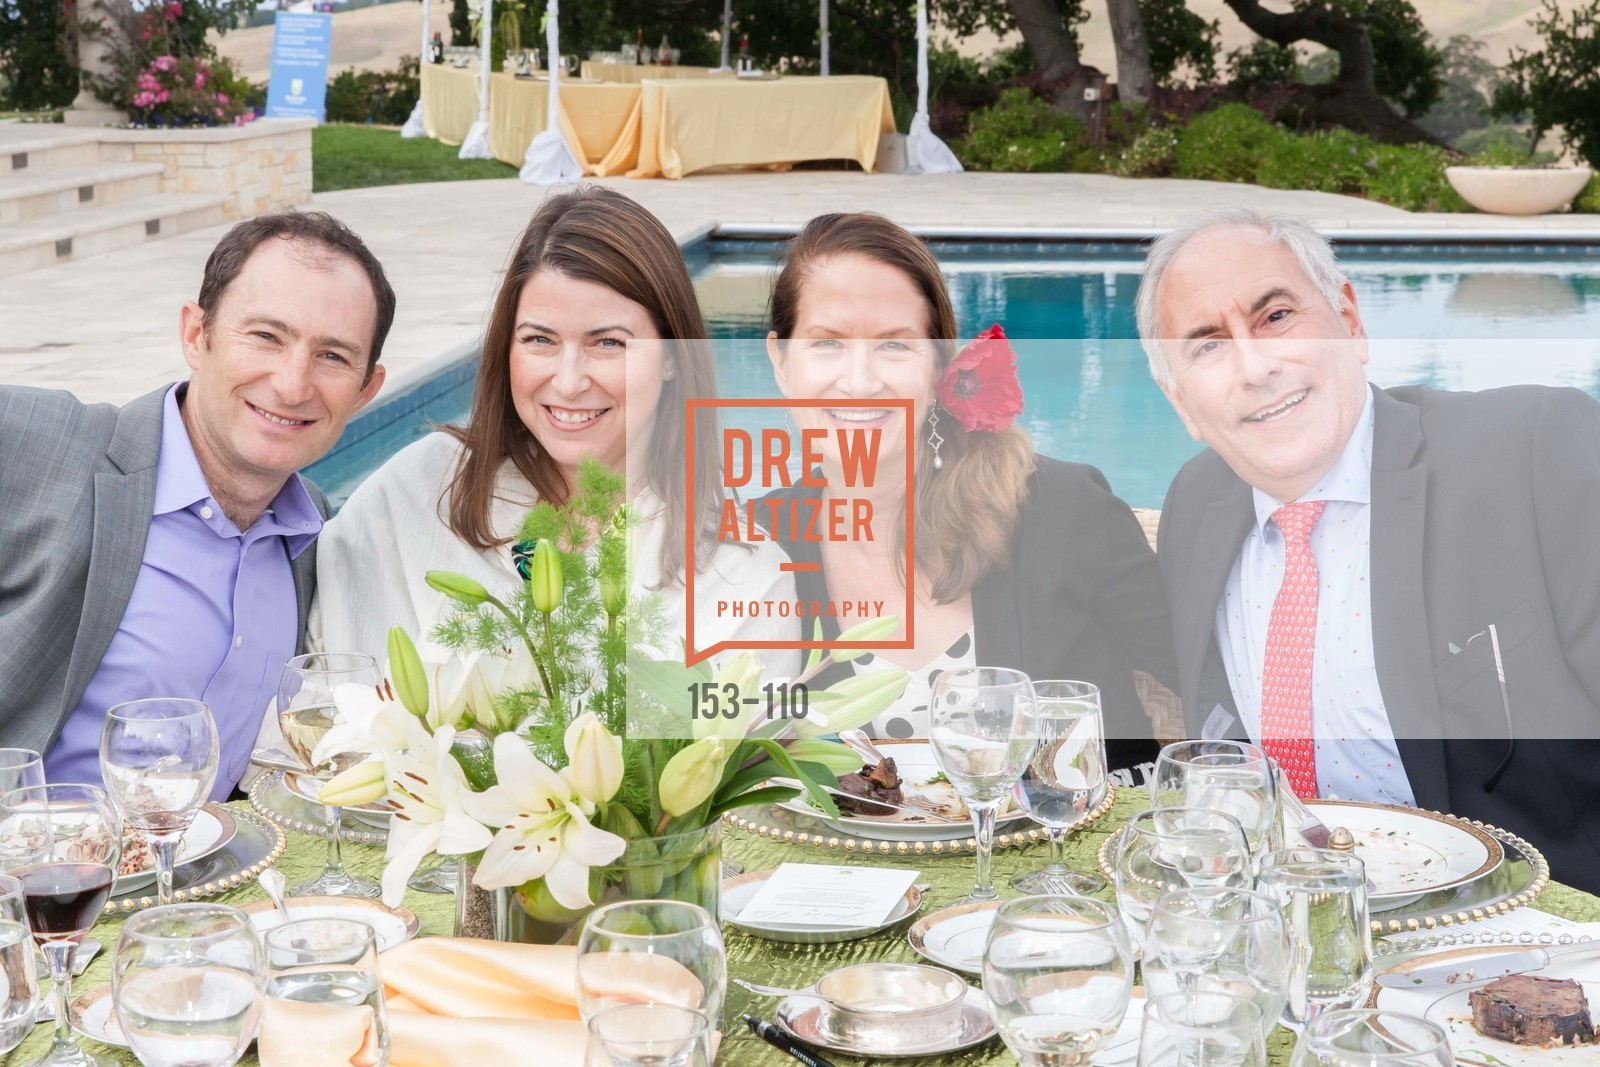 Jonathan Romanowsky, Mindy Romanowsky, Mary Jane Heppe, Steve Heppe, LYME AID 2015 Benefiting the Bay Area Lyme Foundation, Private Residence, May 16th, 2015,Drew Altizer, Drew Altizer Photography, full-service agency, private events, San Francisco photographer, photographer california